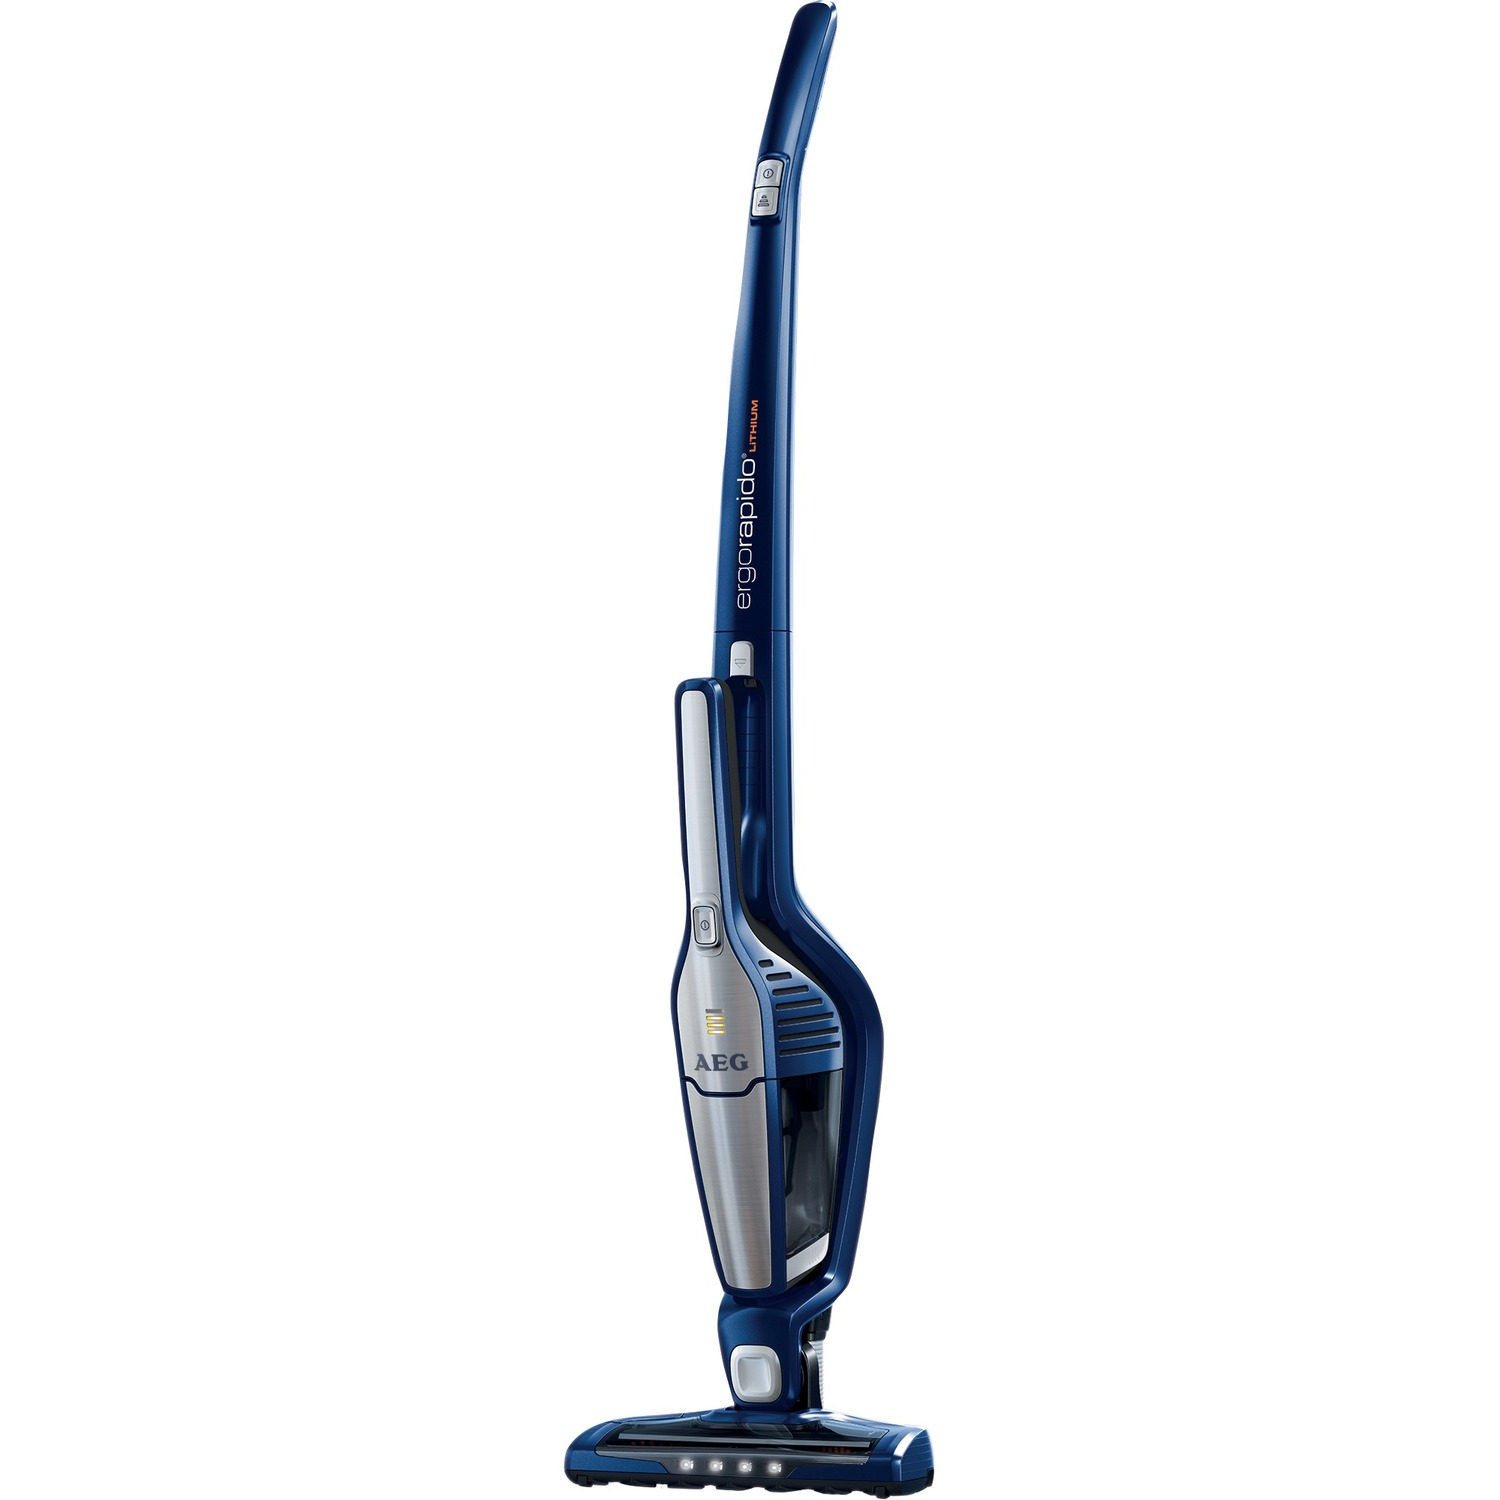 3065 furthermore Hoover PU71 EN01001 Enigma Bagged Pet Upright Vacuum Cleaner In Black besides Gasket Door 74220 furthermore Product together with Bracket. on lg upright vacuum